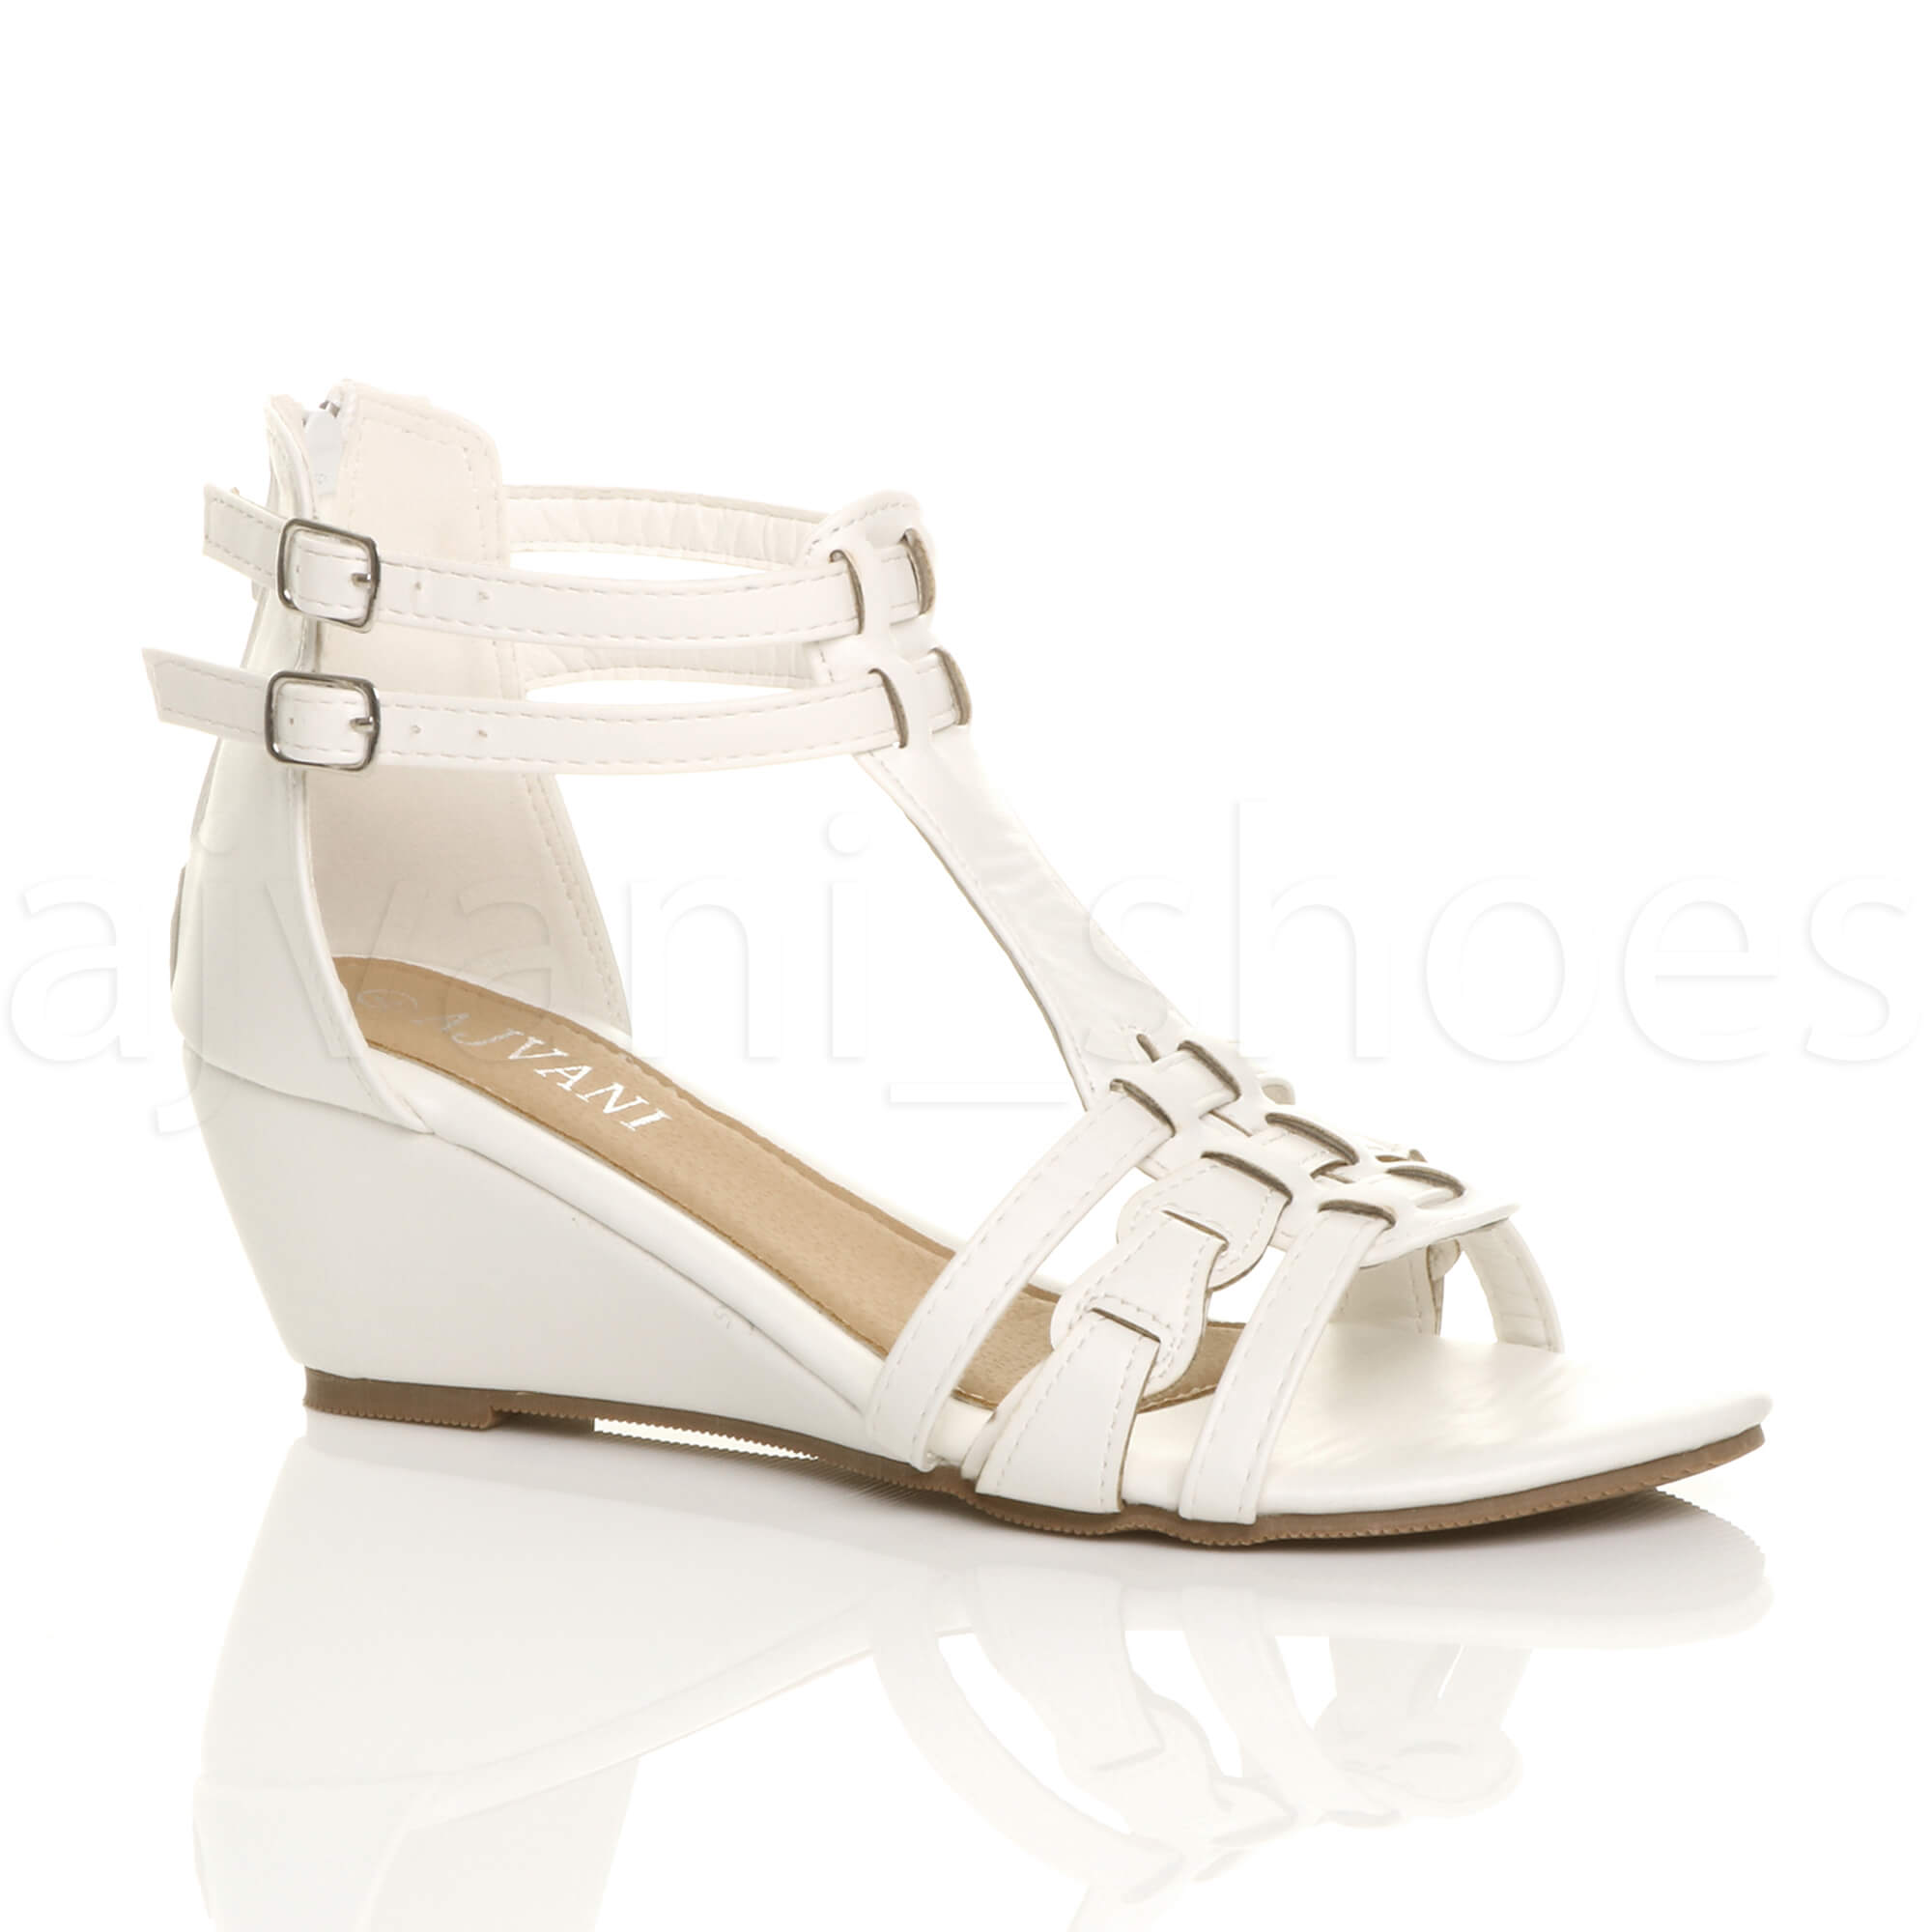 WOMENS-LADIES-LOW-MID-WEDGE-HEEL-BUCKLE-GLADIATOR-STRAPPY-T-BAR-SANDALS-SIZE